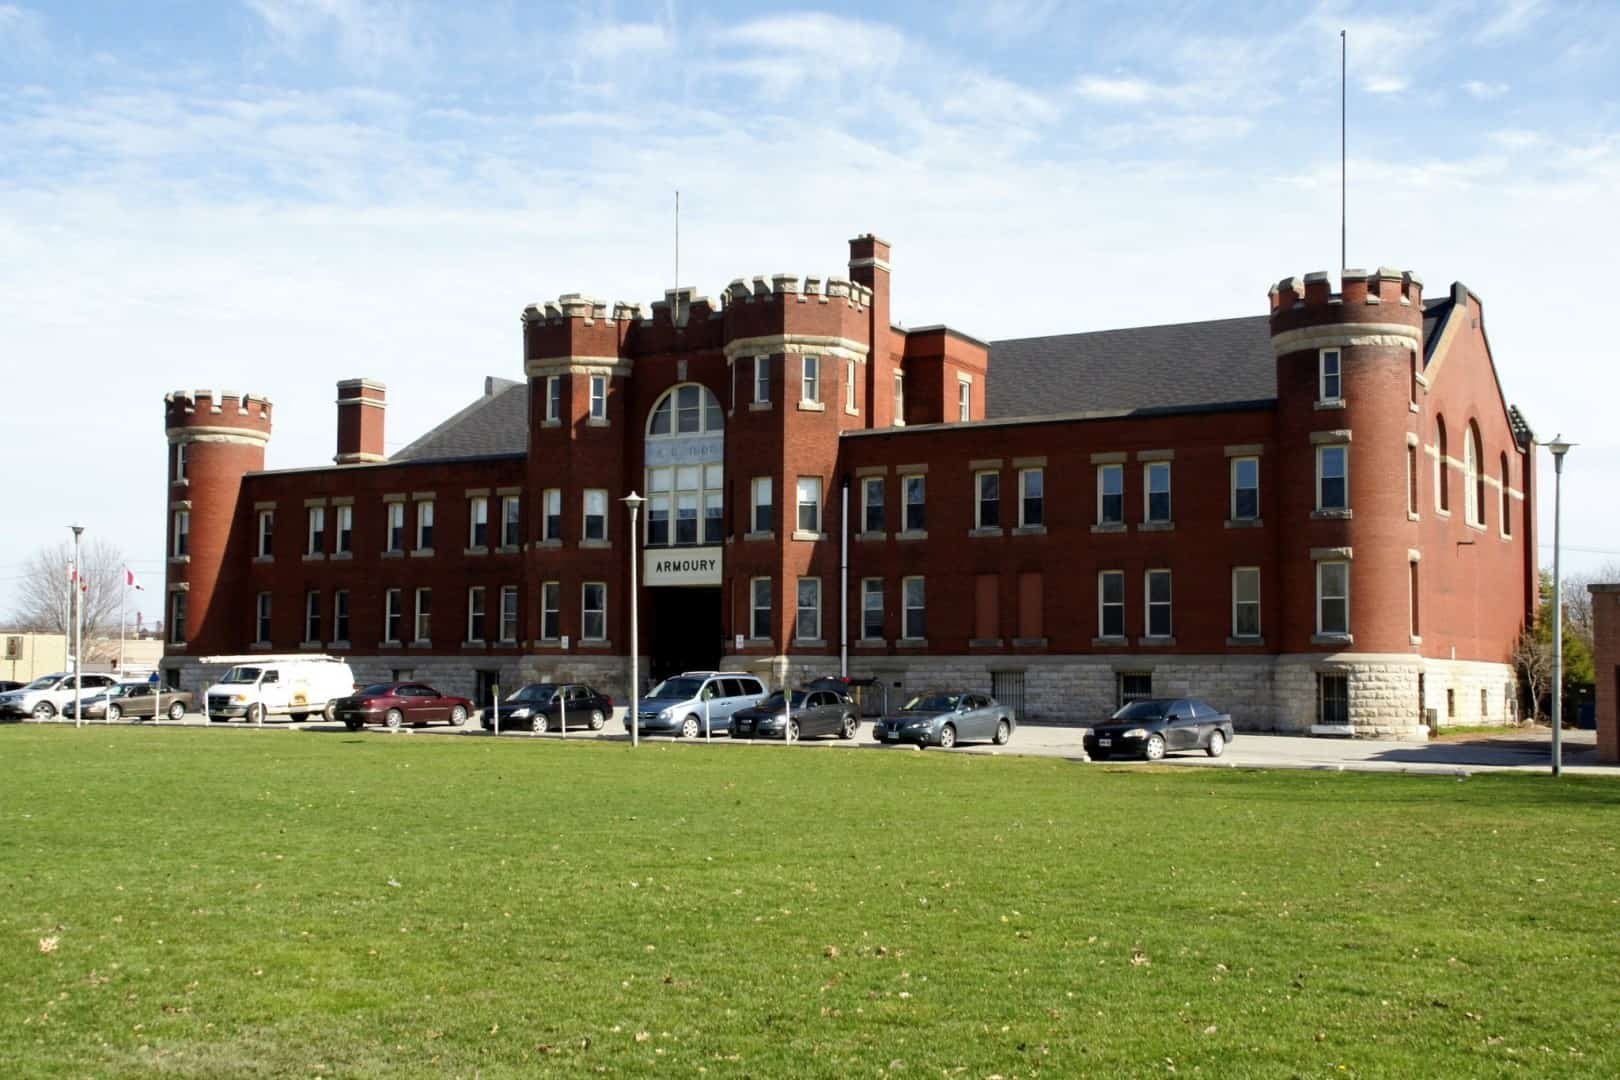 Castle Chatham Armoury, the century-old heritage building in Chatham-Kent